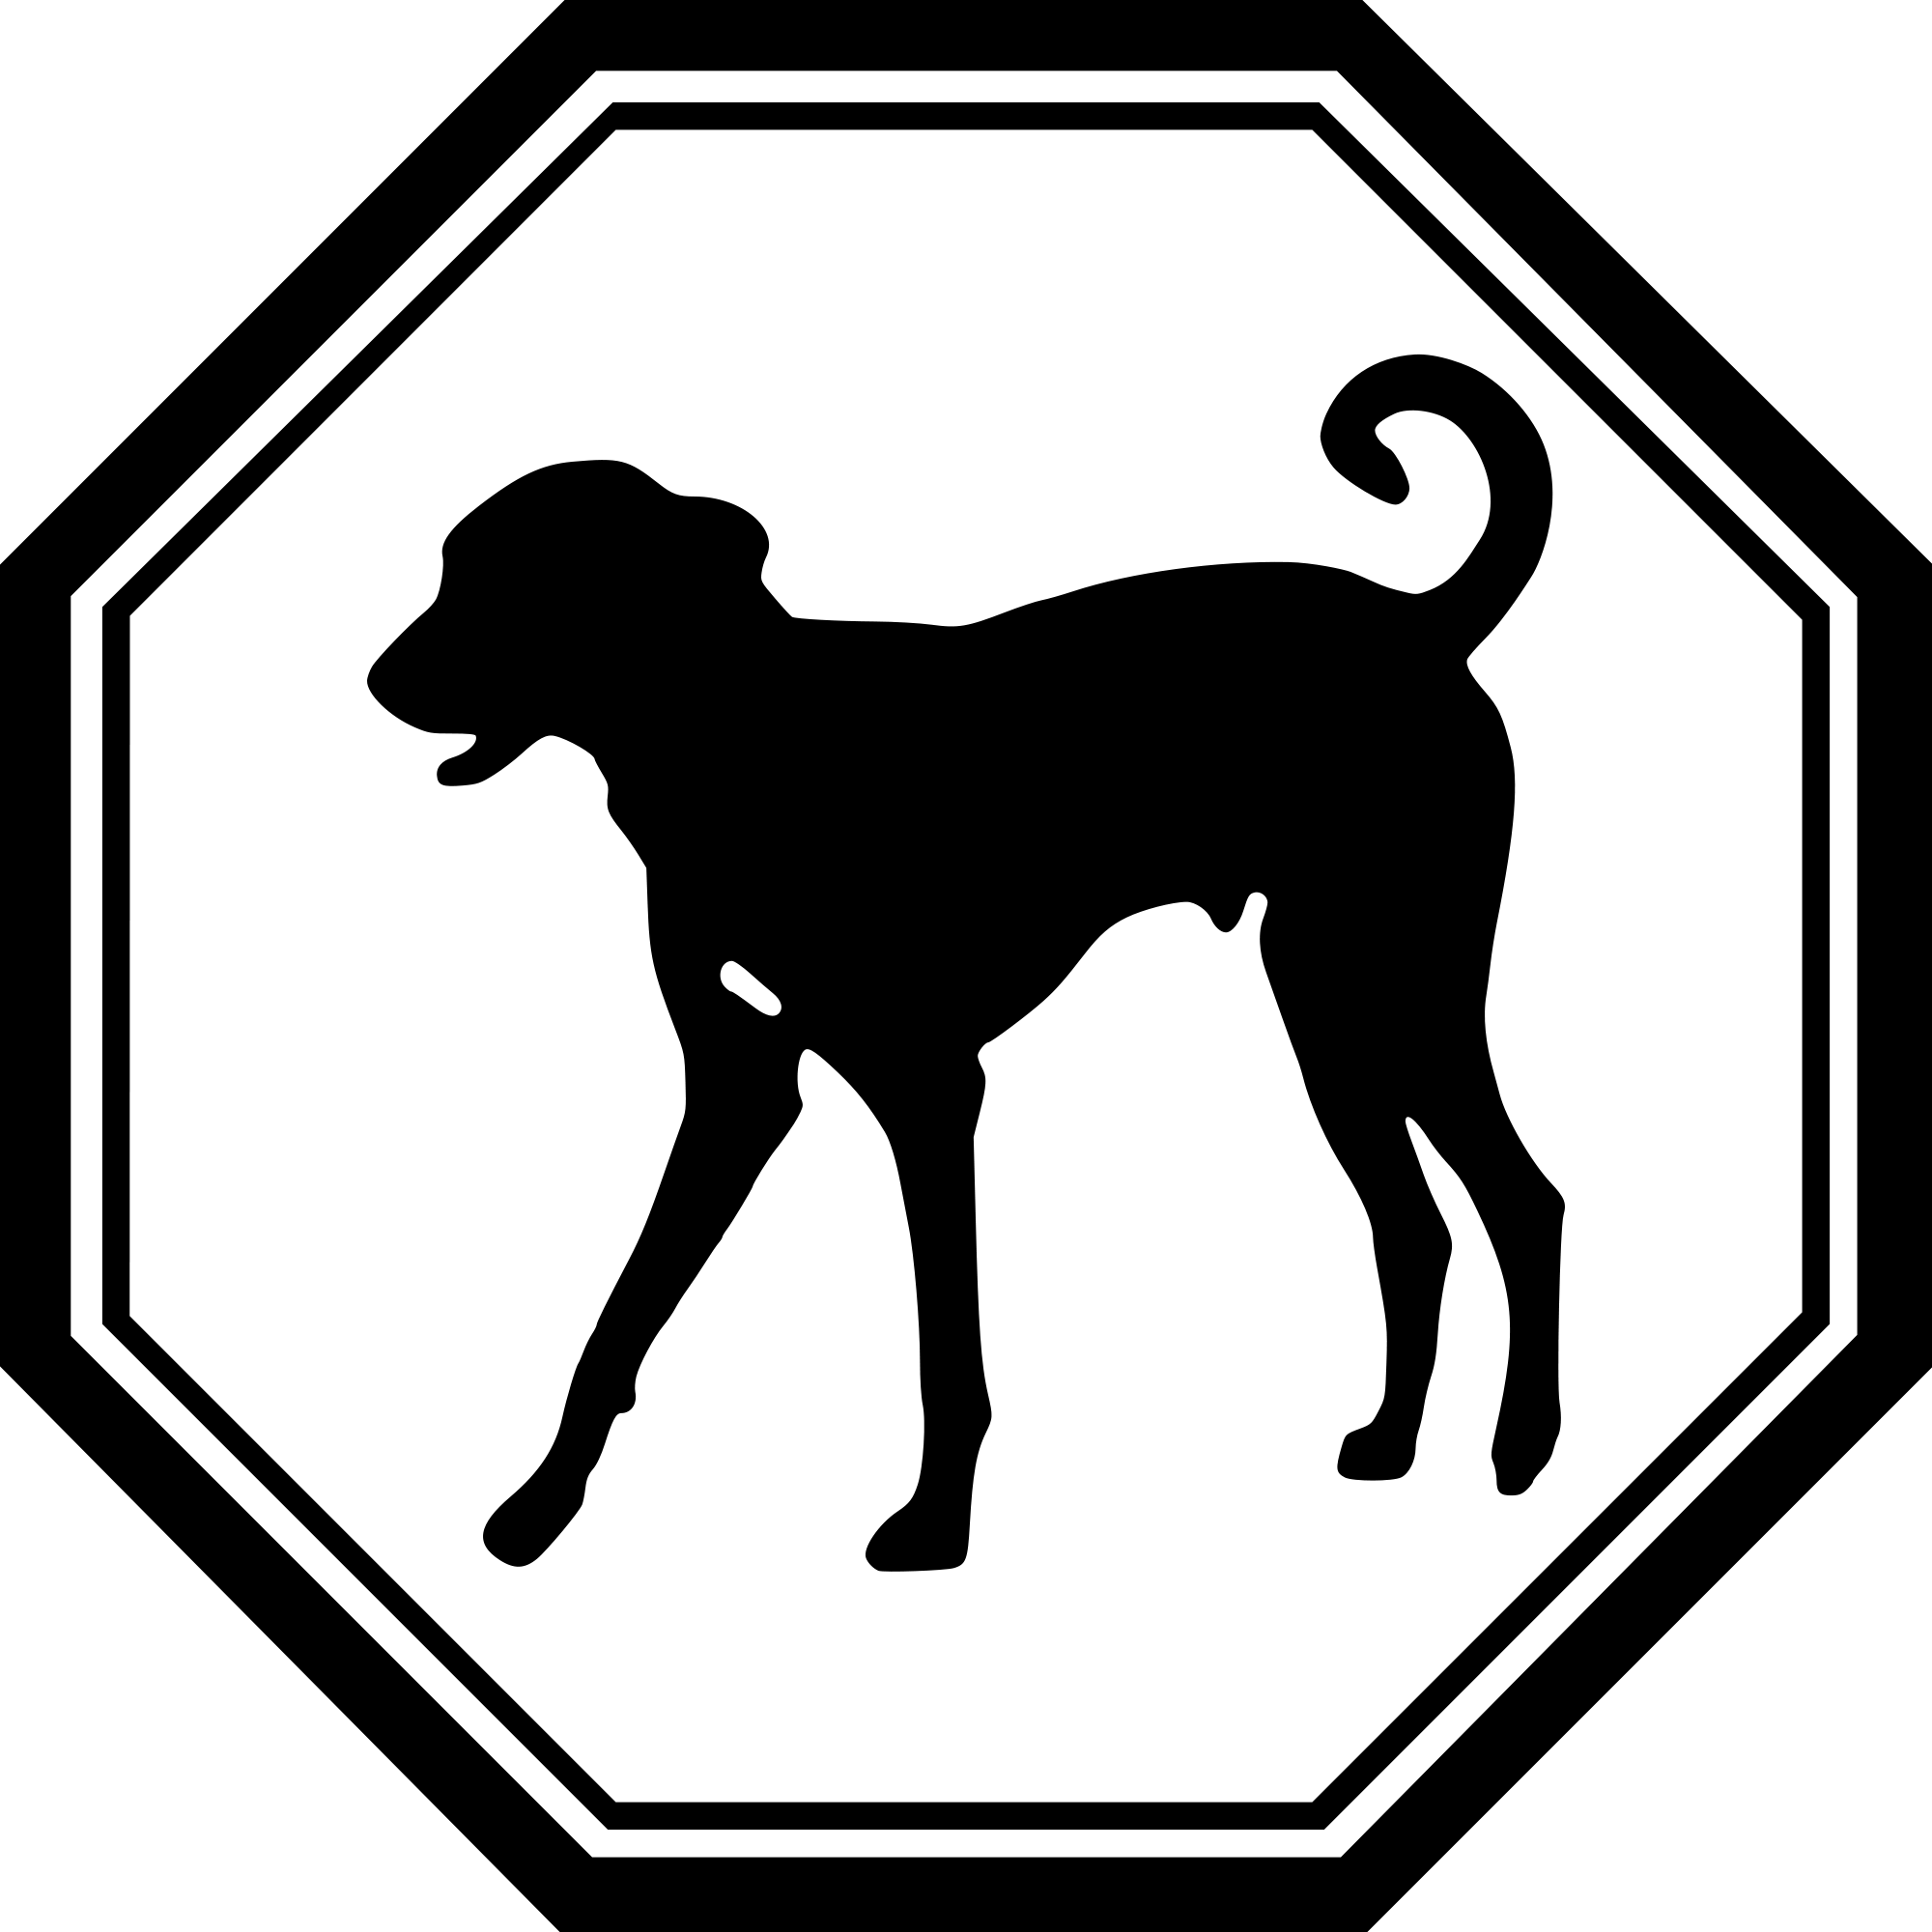 Hunting clipart transparent background. Chinese horoscope dog sign